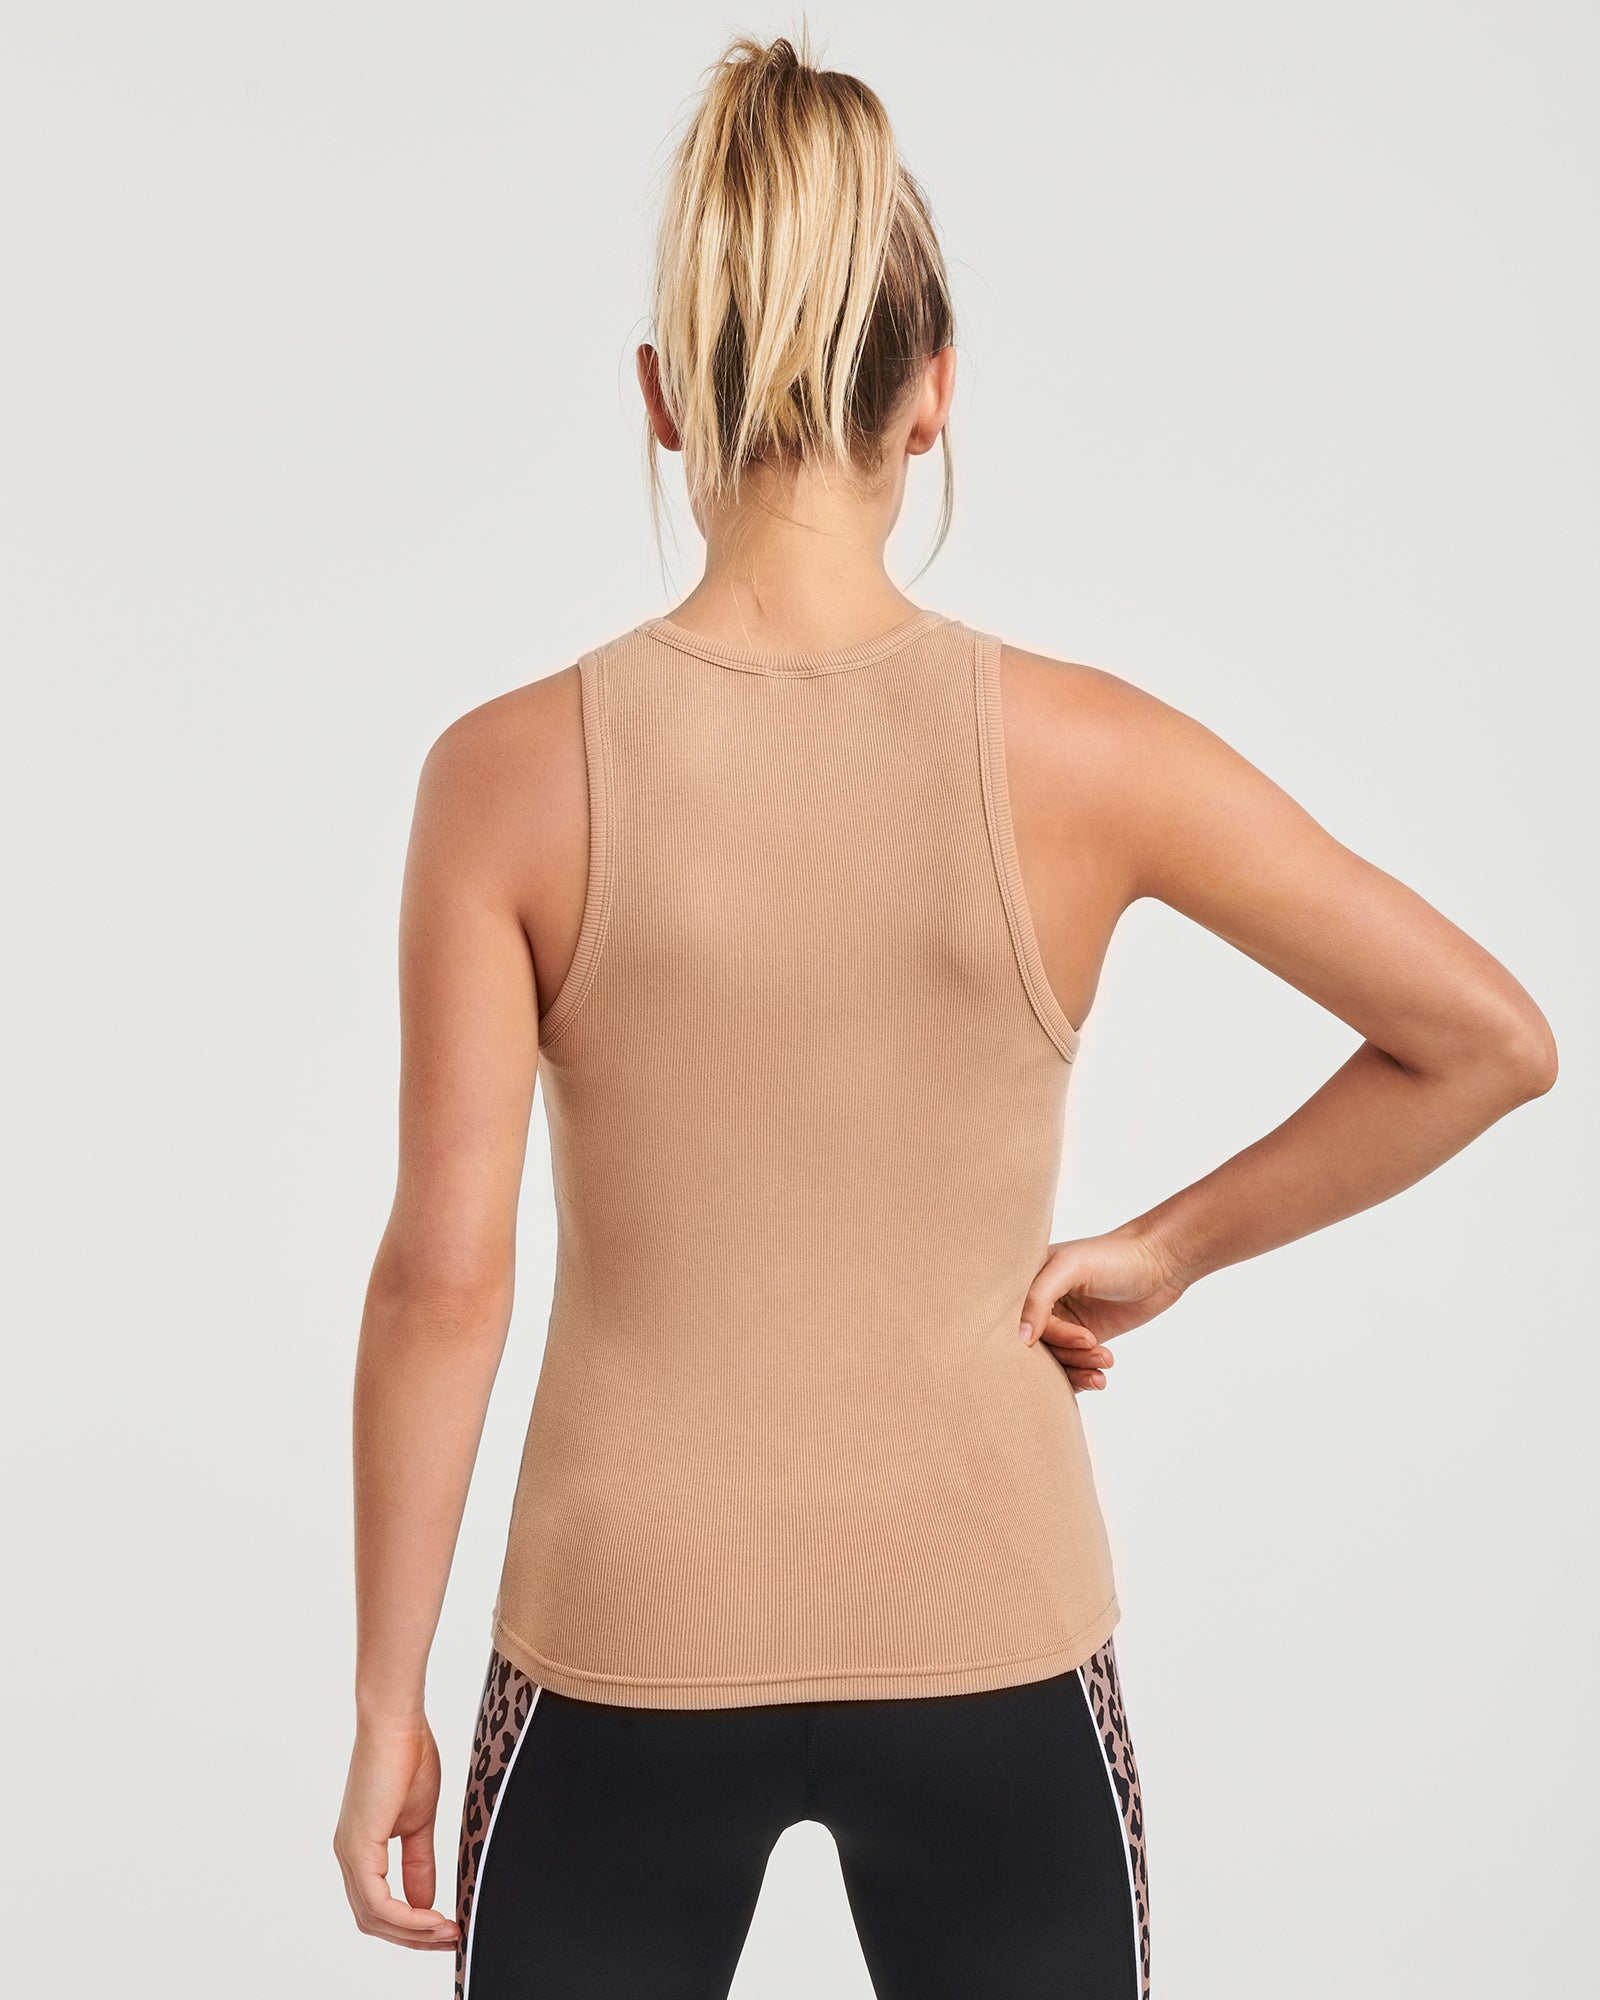 La Friole Fitted Rib Tank